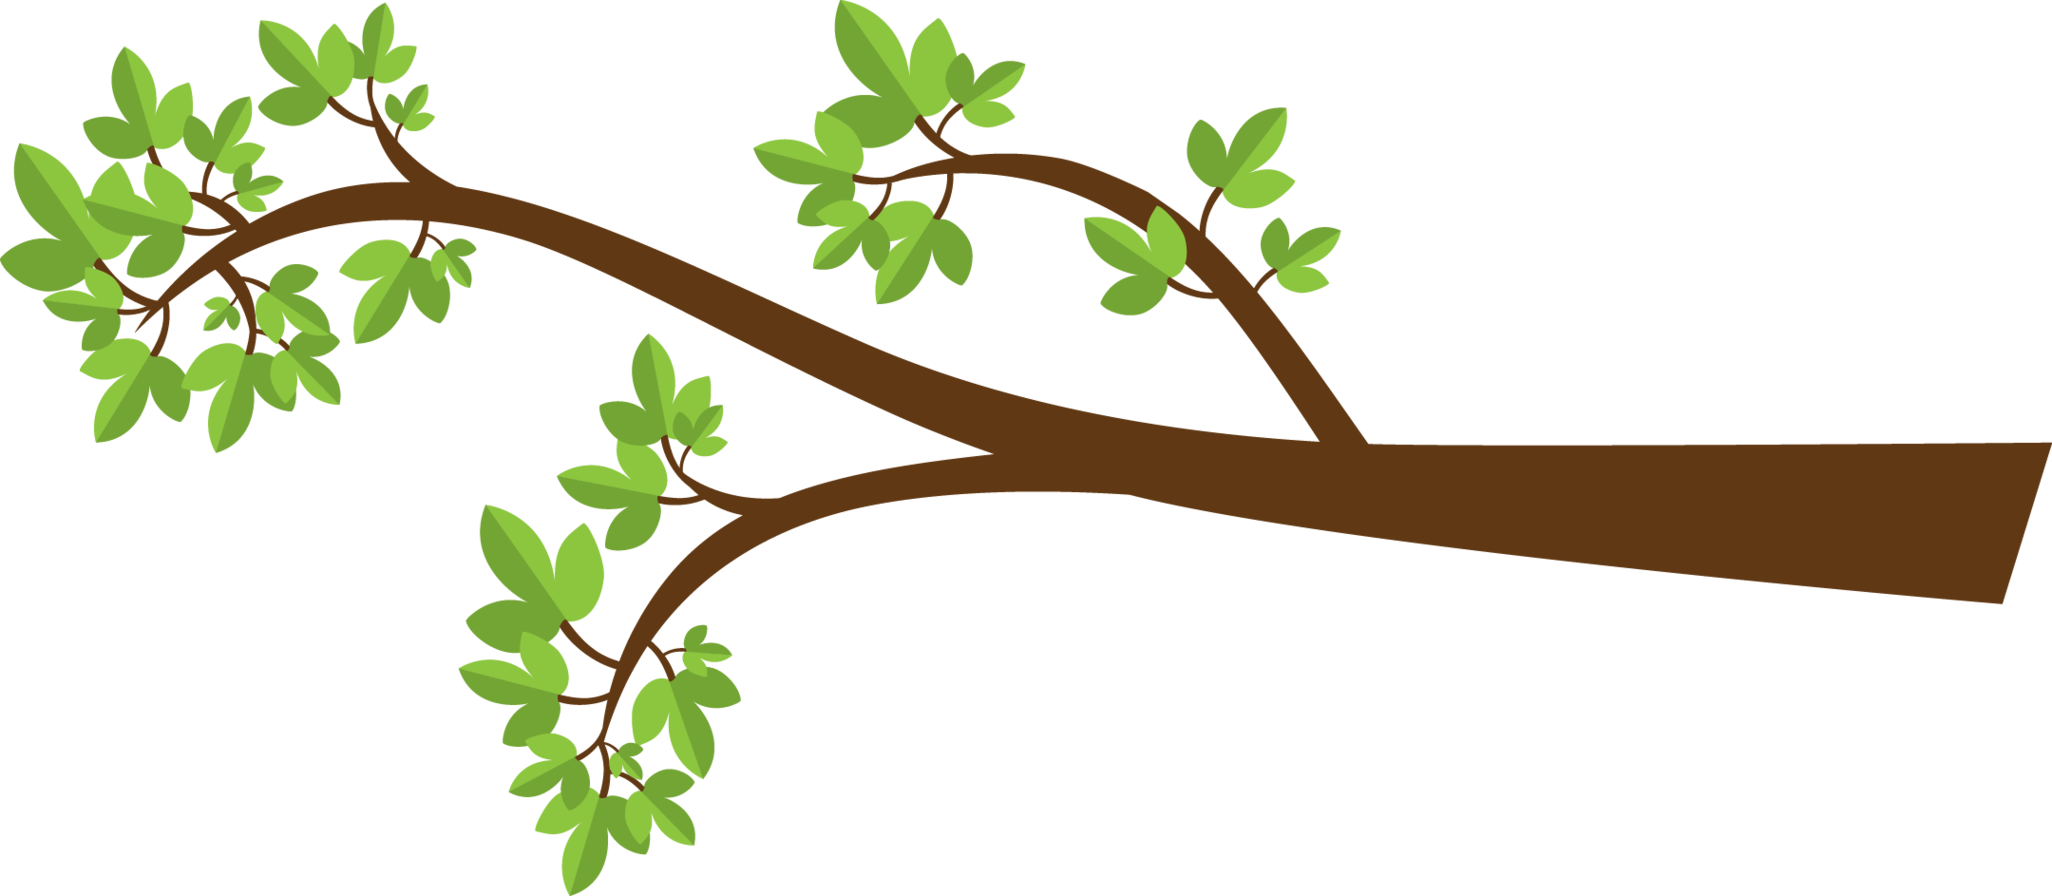 Weight clipart cartoon.  collection of tree